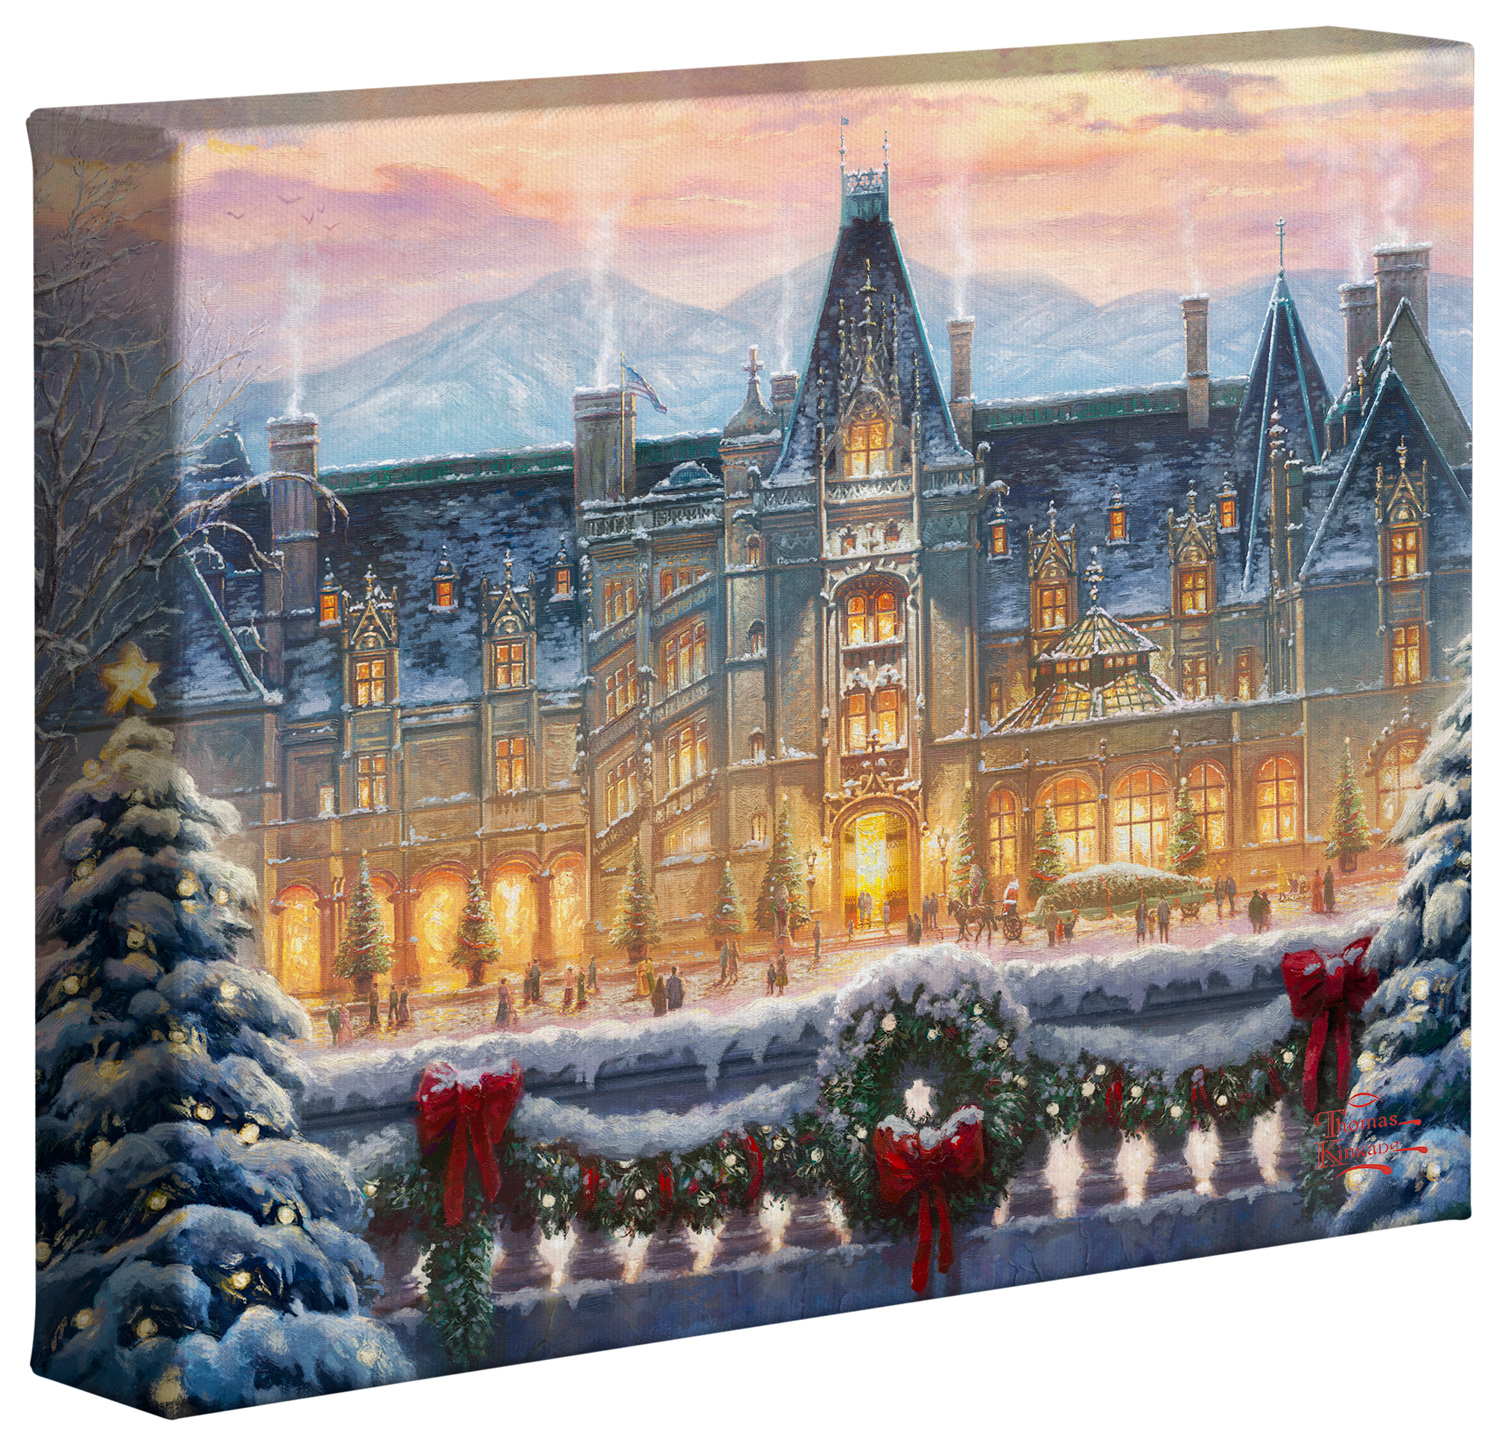 Biltmore Christmas.Christmas At Biltmore 8 X 10 Gallery Wrapped Canvas